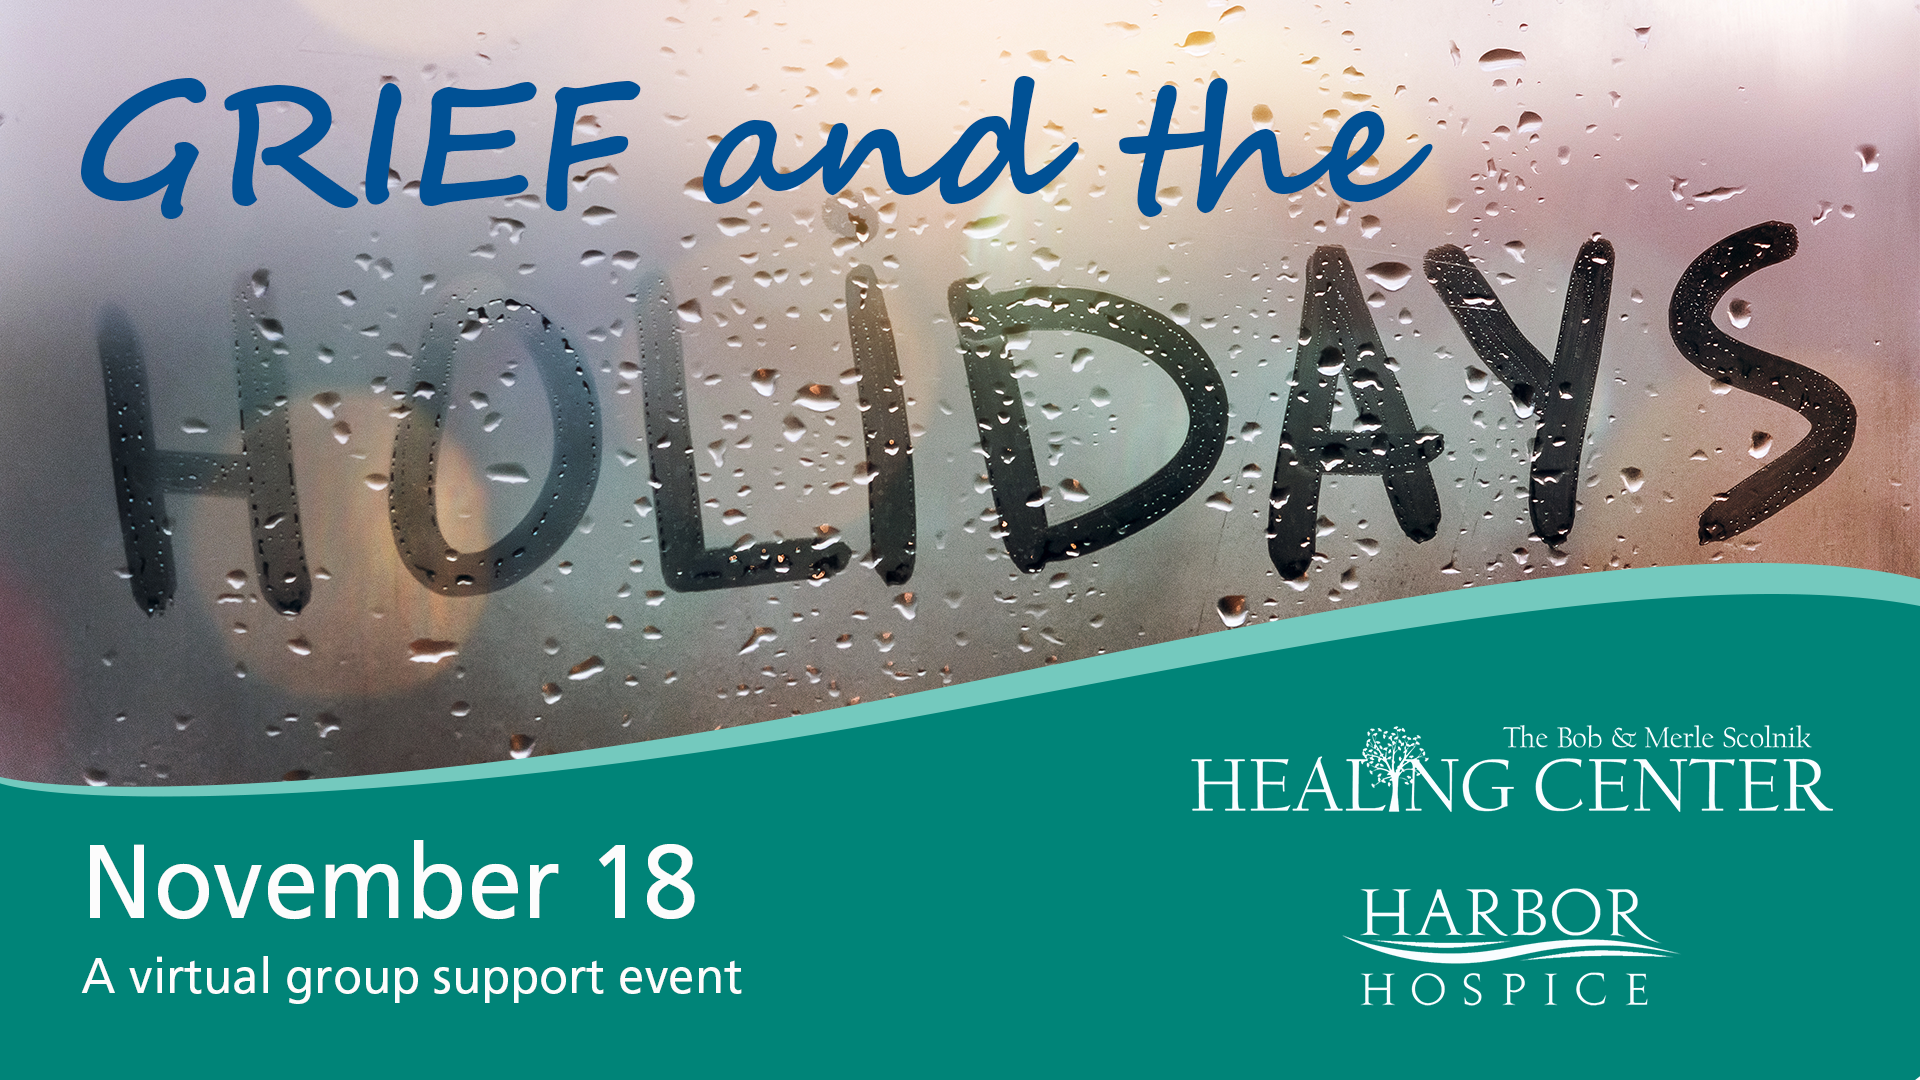 Event Header GrieftheHolidays - Grief & The Holidays - a virtual grief support event